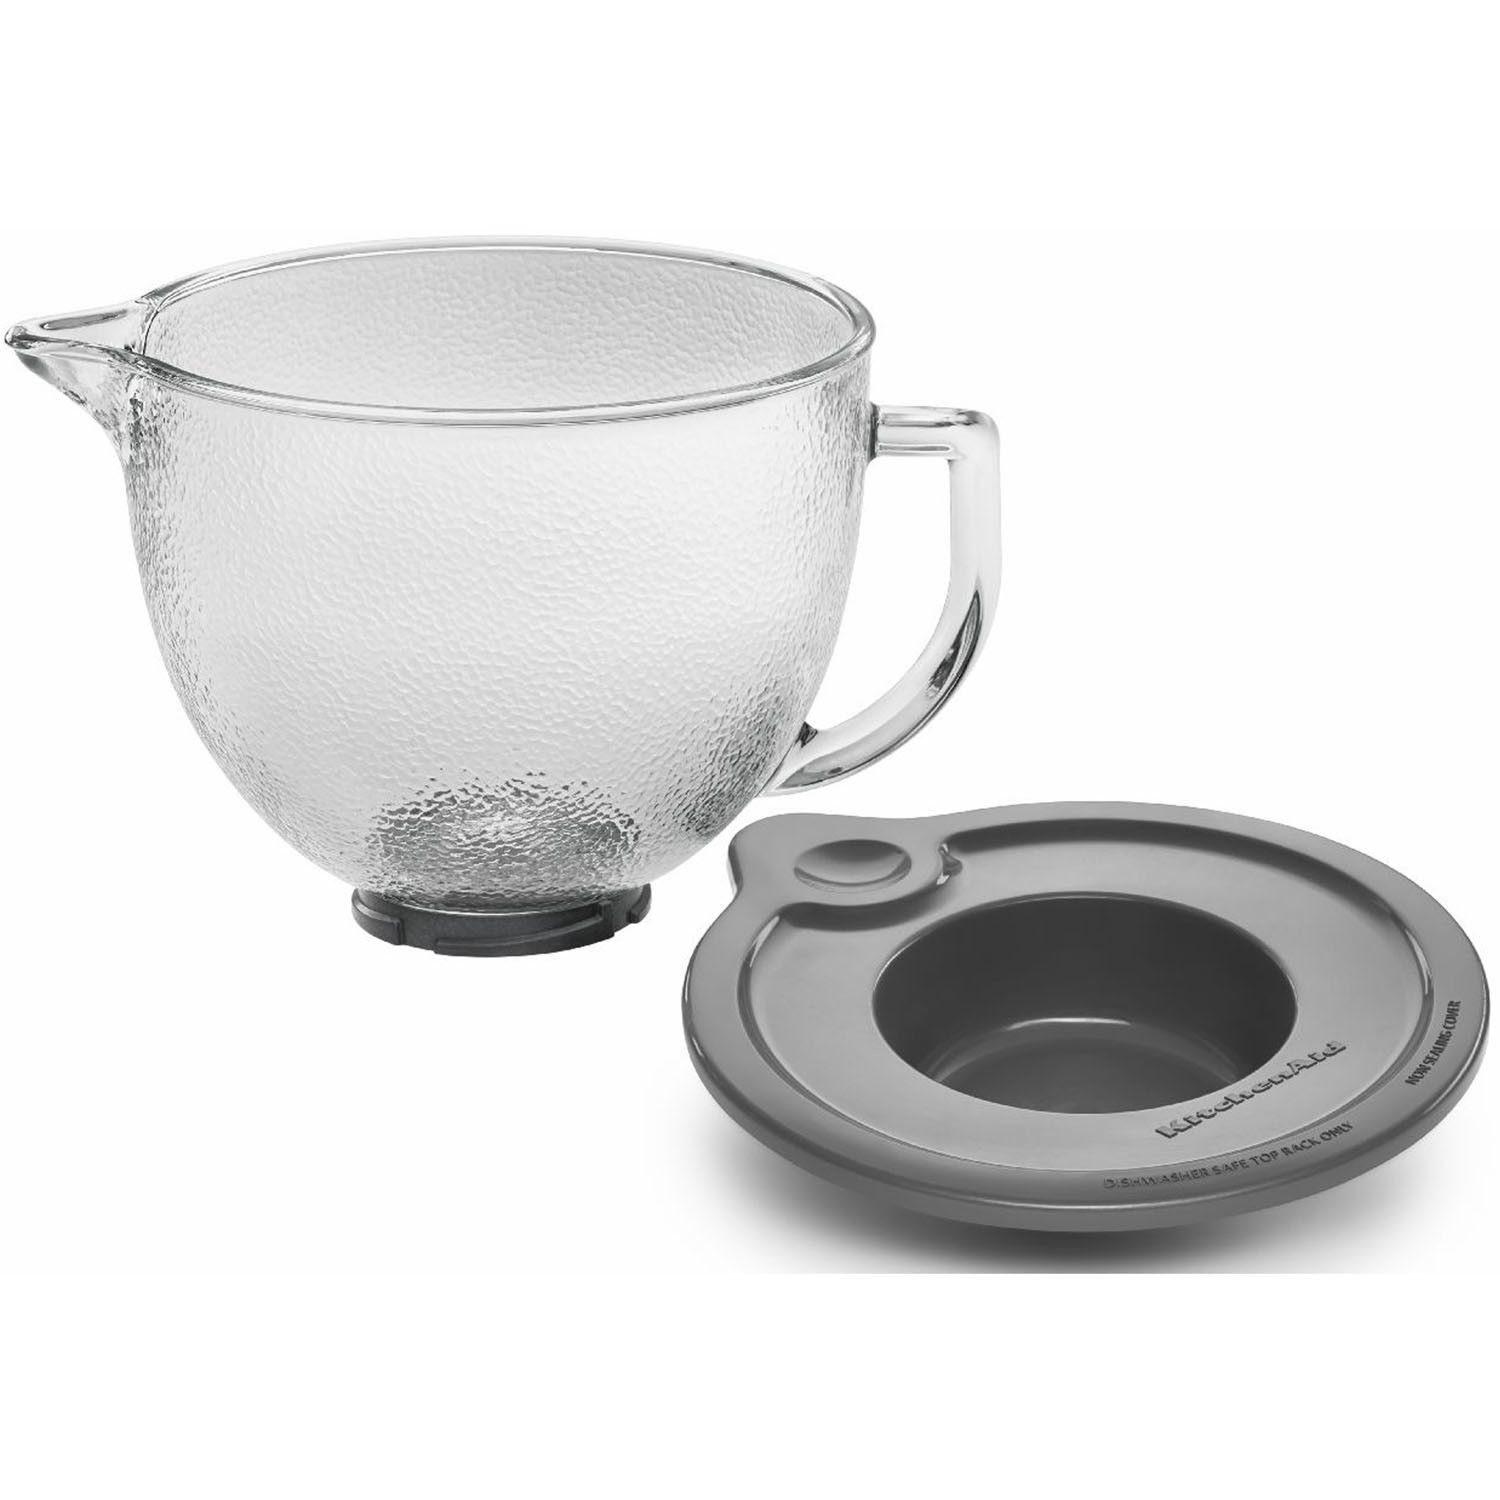 5 Qt. Hammered Glass Bowl for Tilt-Head Stand Mixers ...